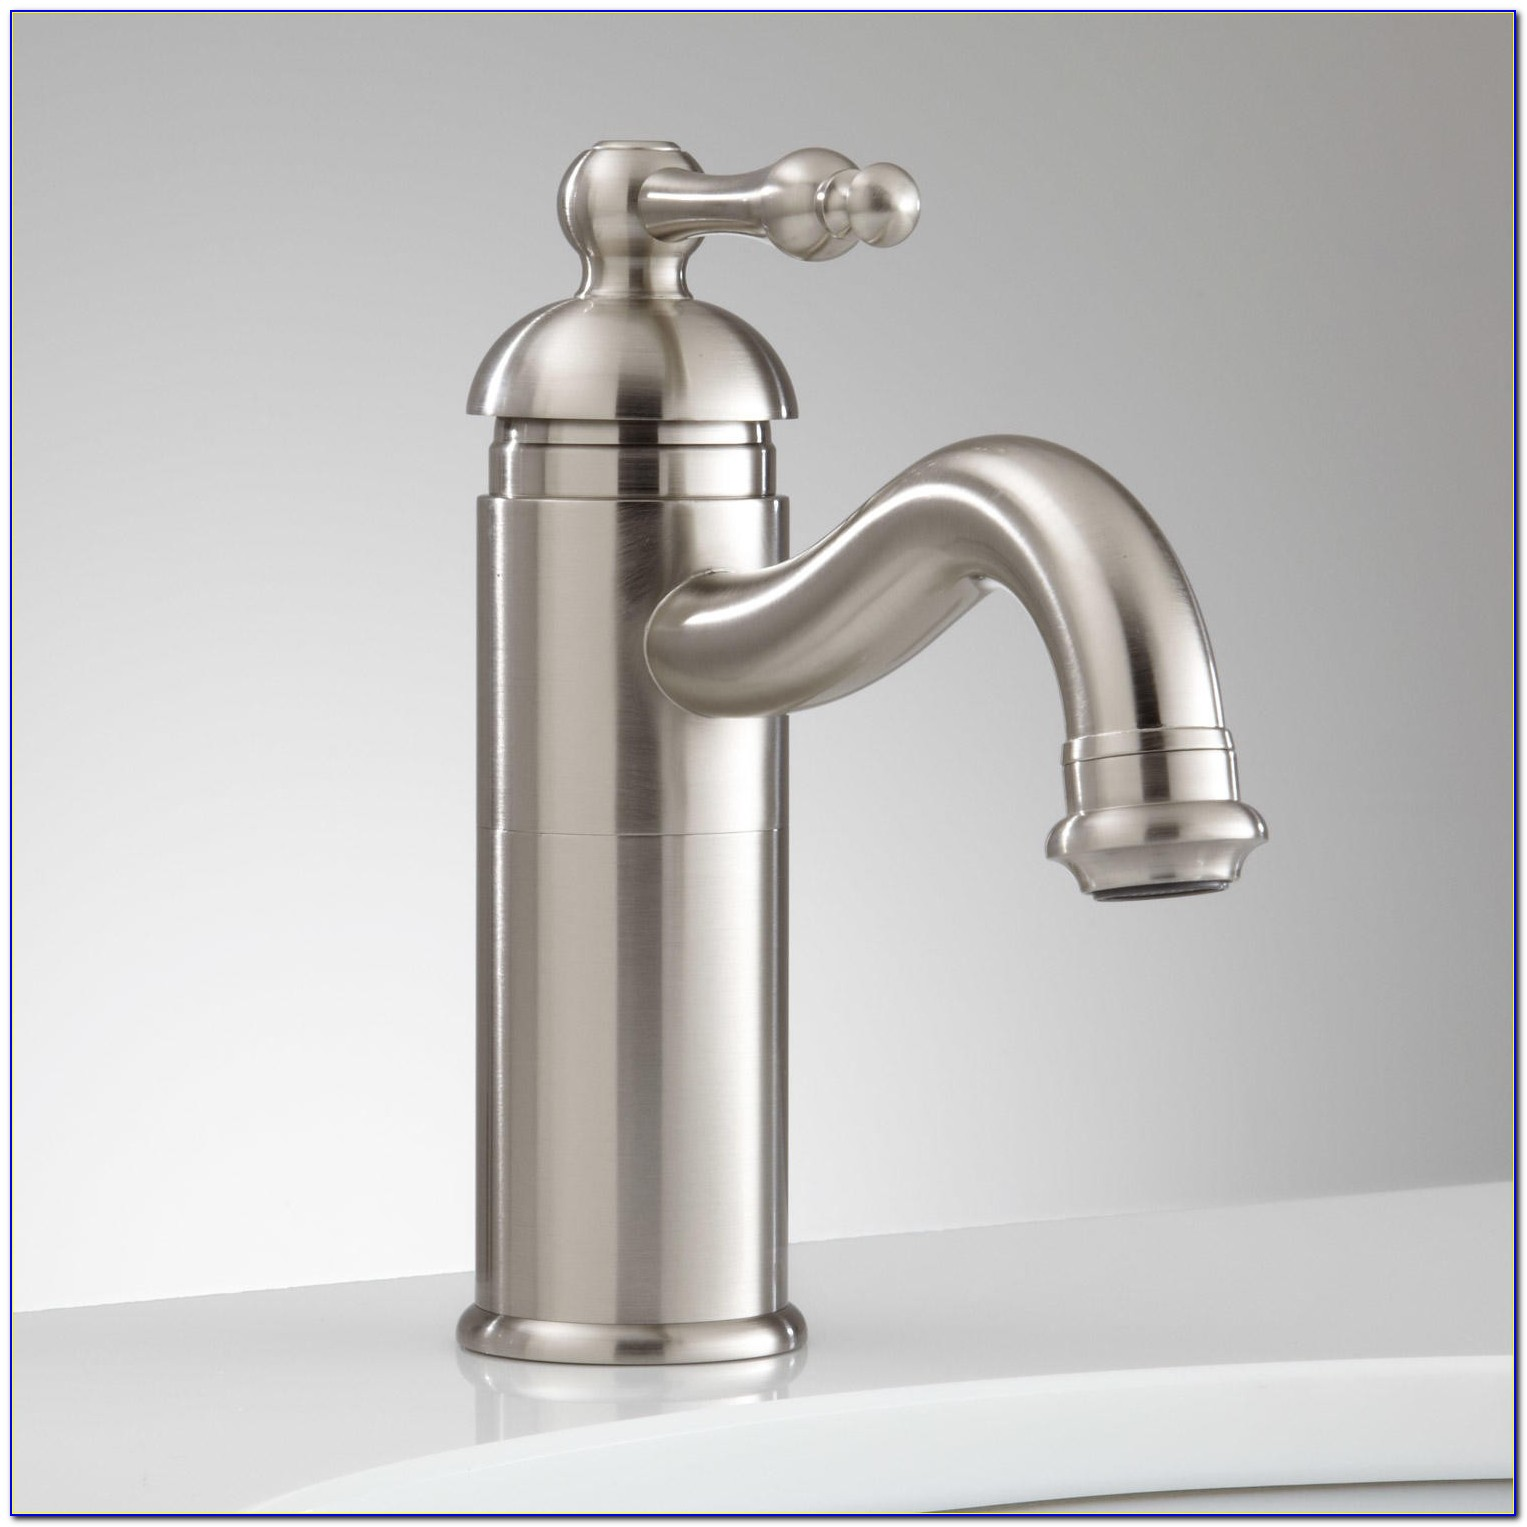 Tall Single Hole Bathroom Sink Faucet